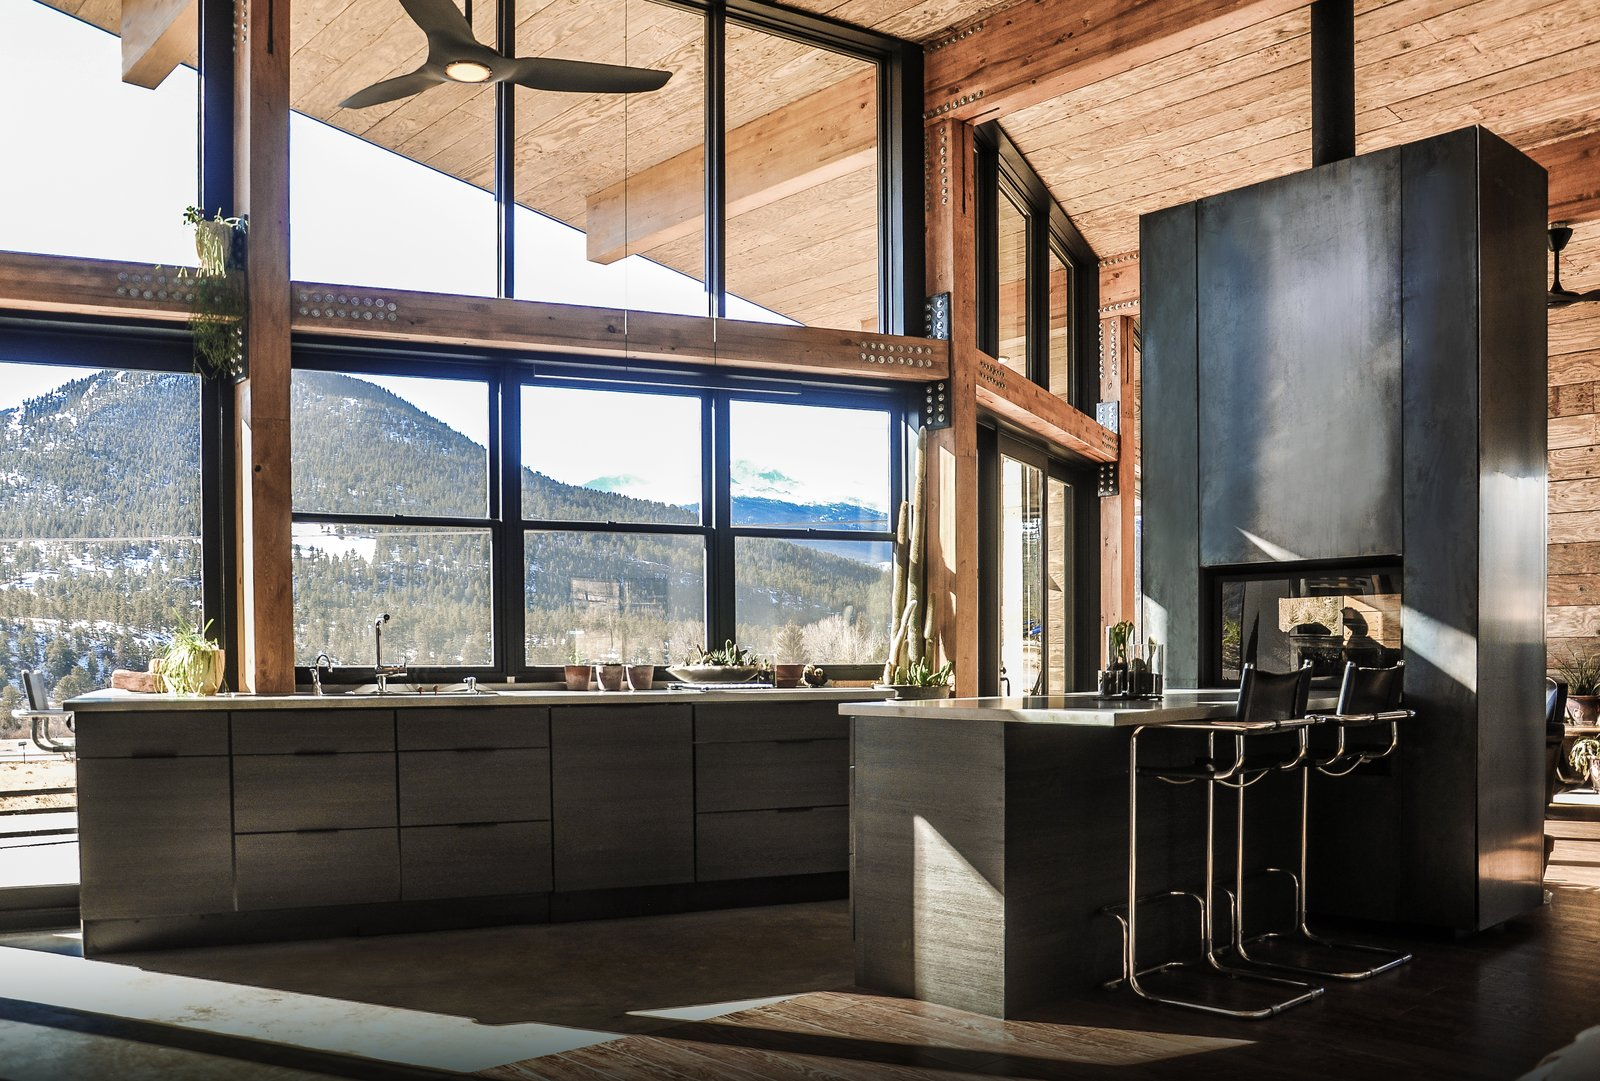 Kitchen, Refrigerator, Microwave, Cooktops, Wood, Dishwasher, Ceiling, Metal, Dark Hardwood, Concrete, Concrete, Range, Wall Oven, Pendant, Concrete, Accent, and Drop In The warm industrial kitchen celebrates views of Rocky Mountain National Park beyond. A see-through, steel fireplace becomes a glowing beacon that warms the kitchen and living room at the heart of the home.   Best Kitchen Cooktops Ceiling Refrigerator Dishwasher Drop In Microwave Pendant Photos from Estes Park Residence